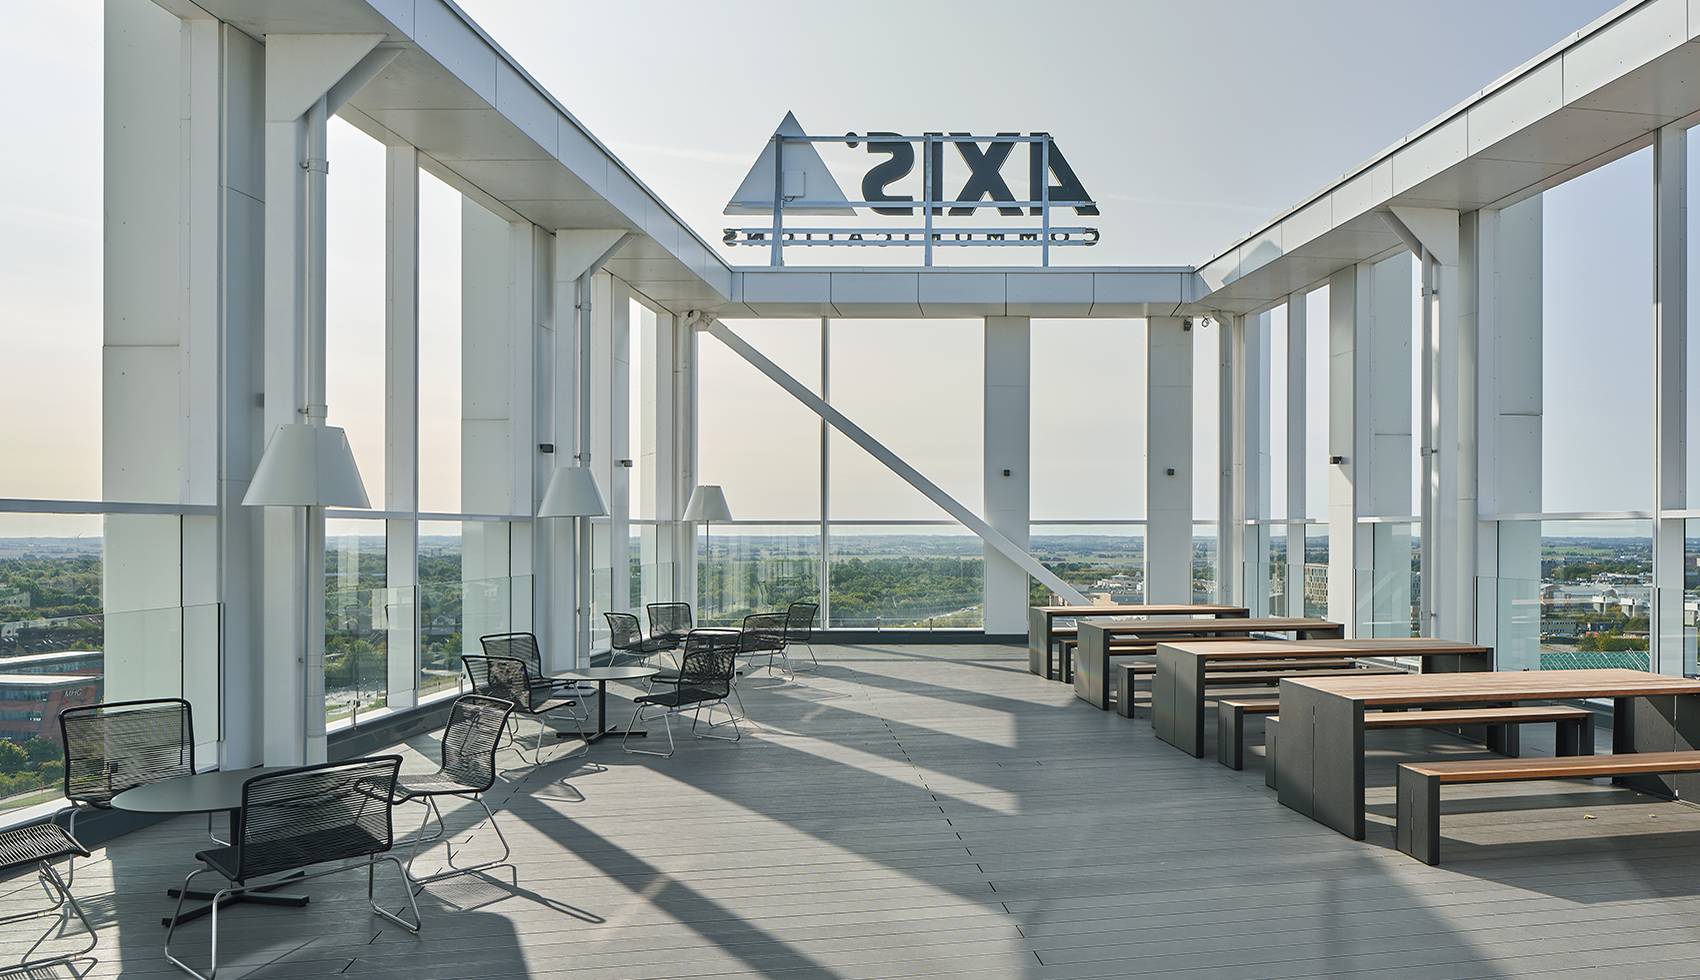 The outdoor terrace on the tenth floor – with a magnificent view of the city of Lund.